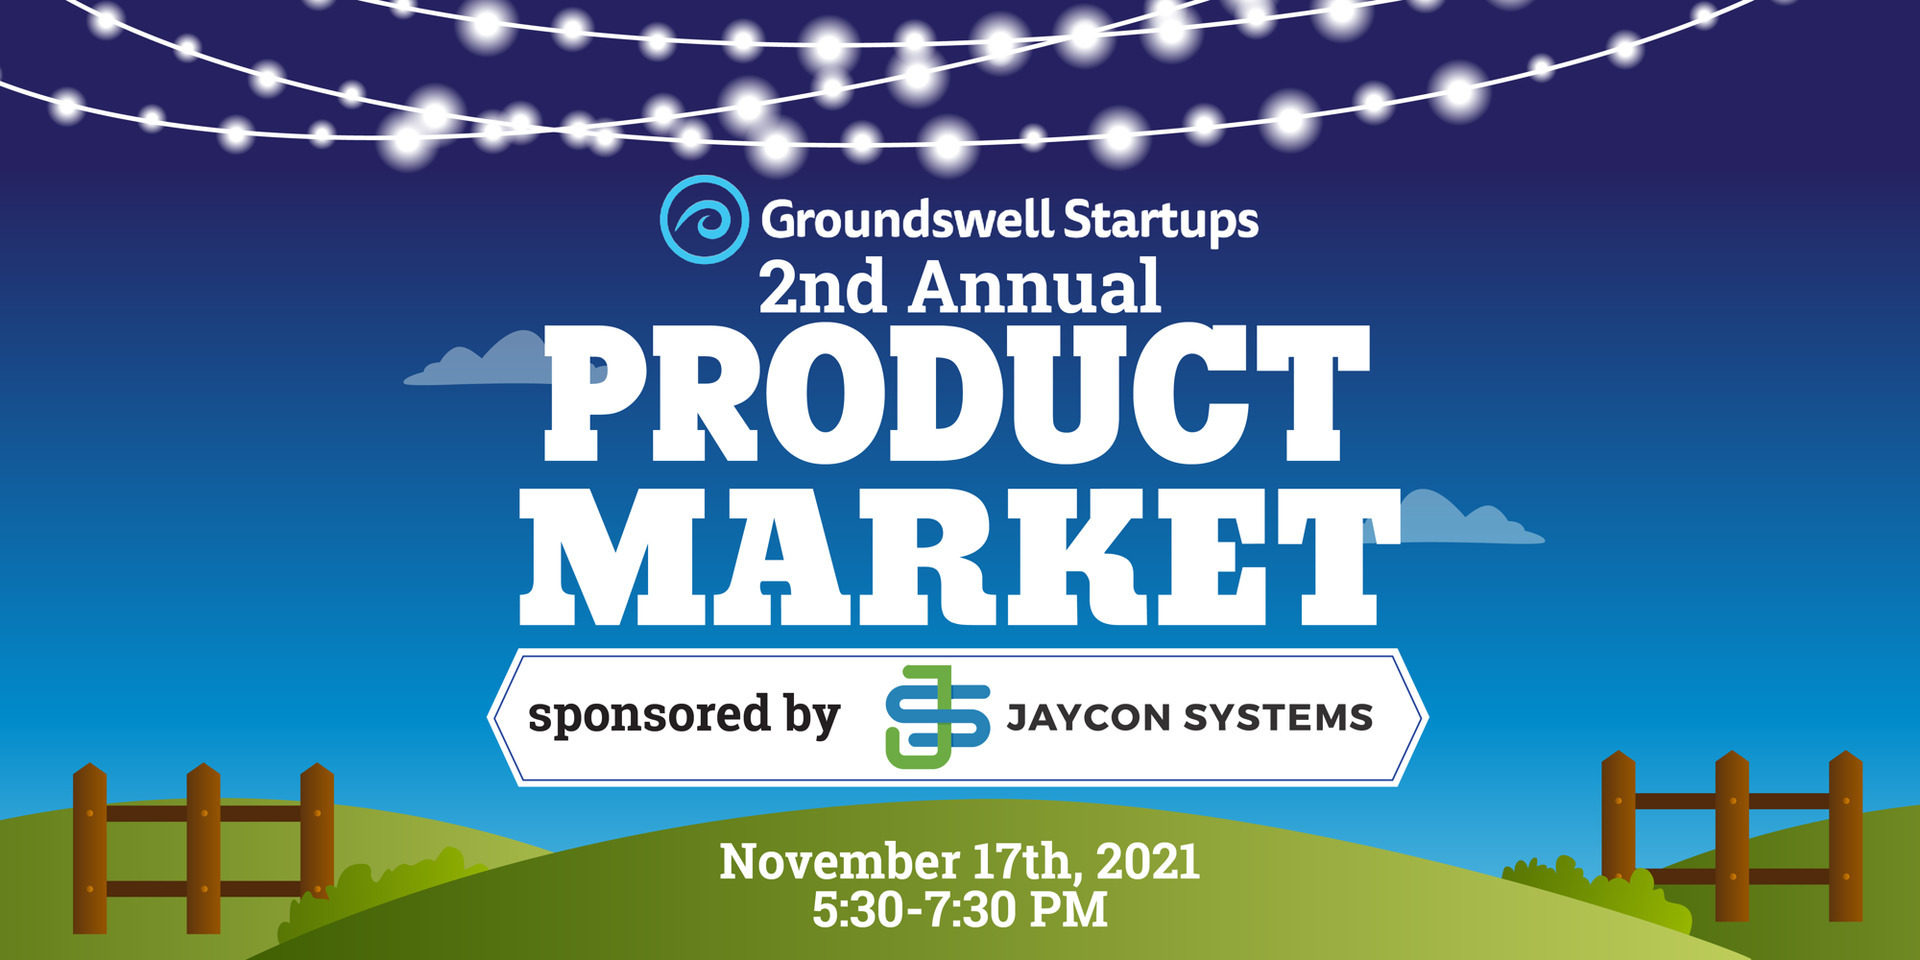 2nd Annual Groundswell Startups Product Market